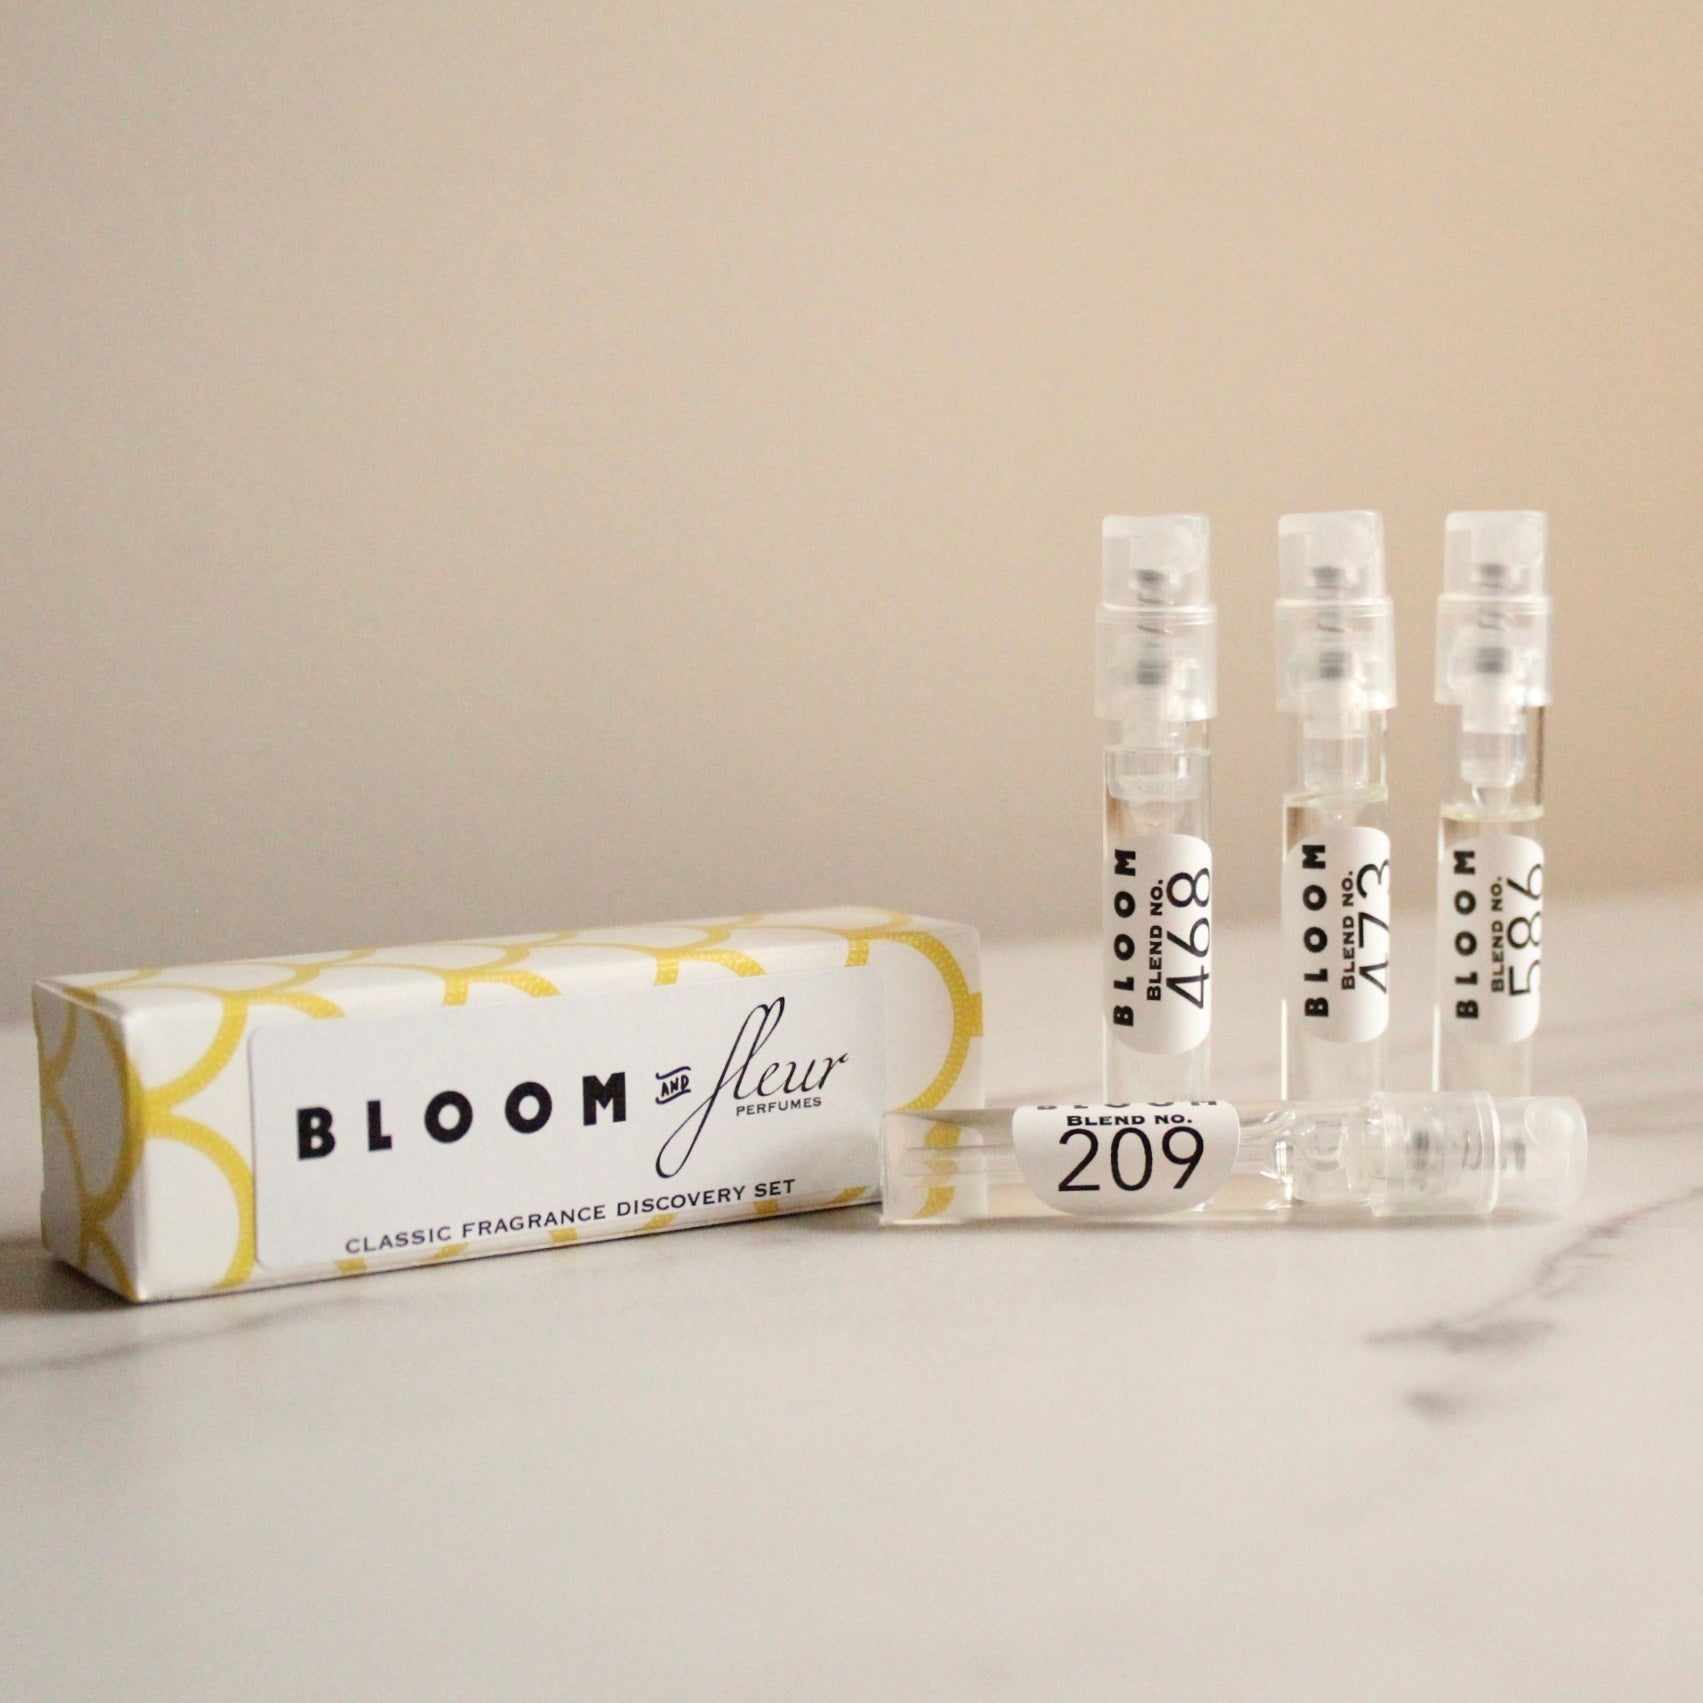 Bloom & Fleur Perfume Samples // Choose Your Scent